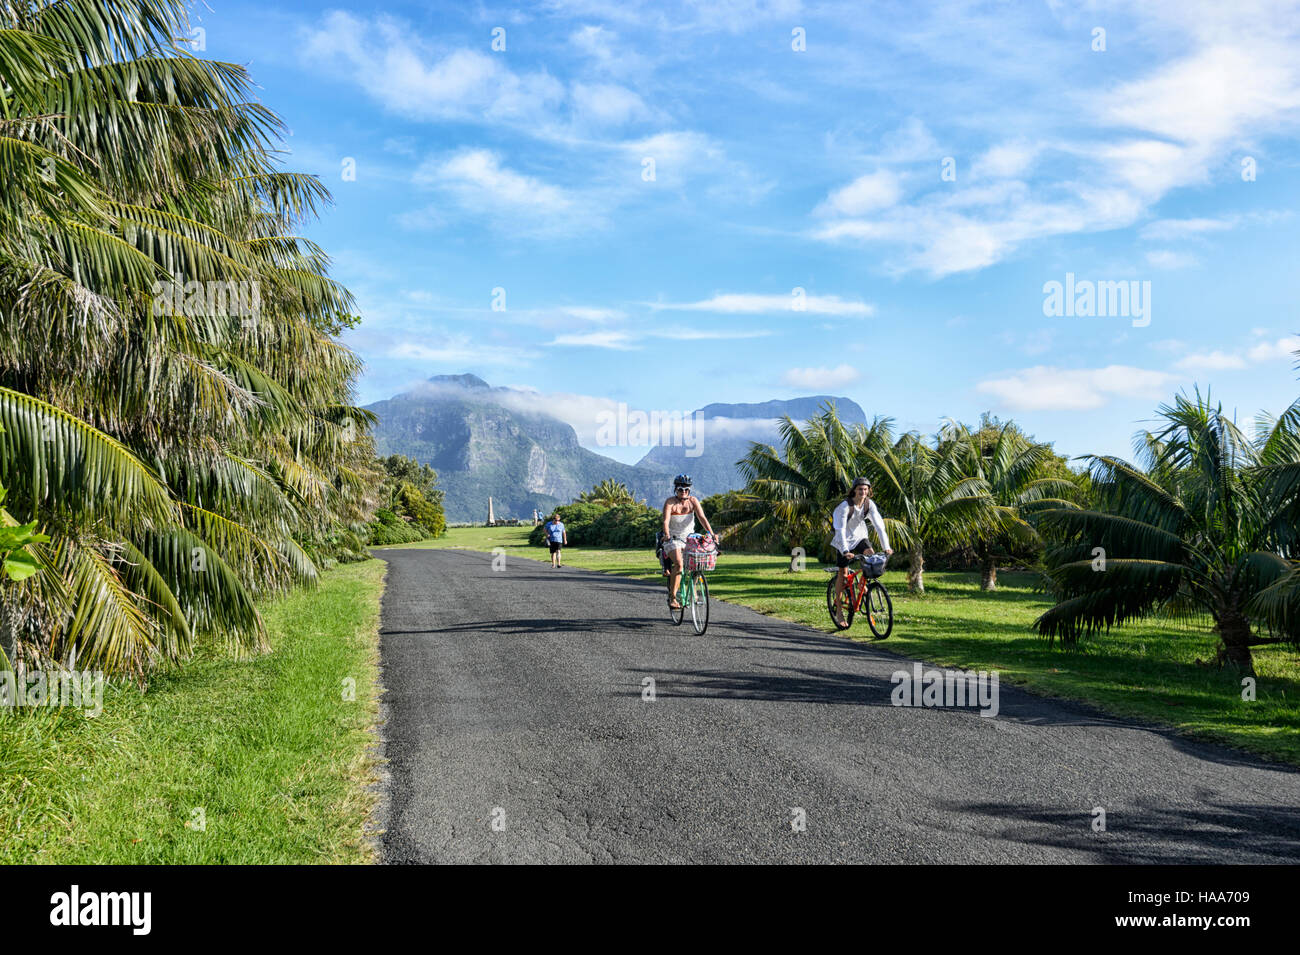 Persons cycling on Lord Howe Island, New South Wales, Australia - Stock Image